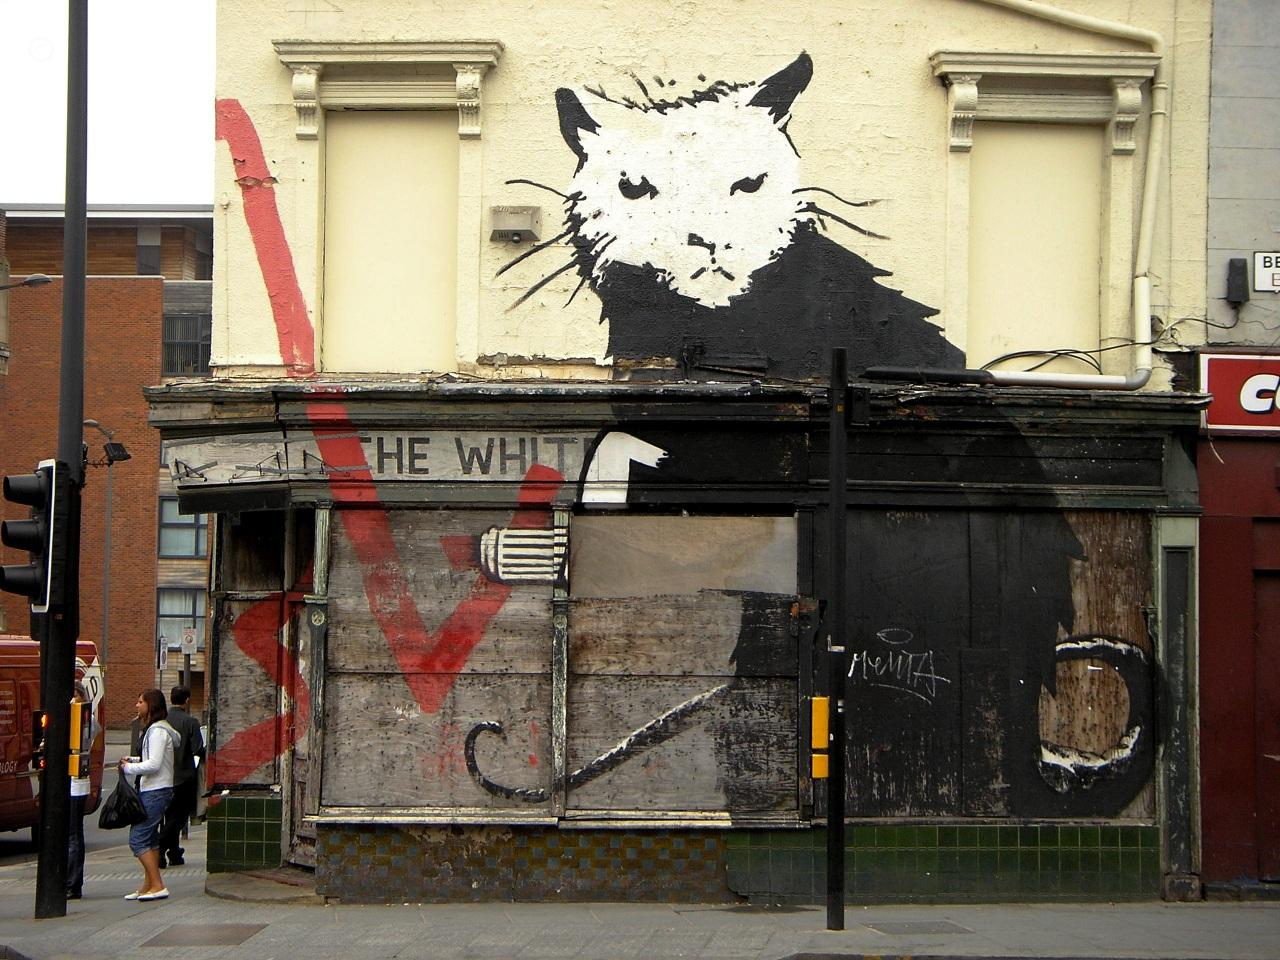 cats-banksy-street-art-fresh-new-hd-wallpaper-banksy-1911687724